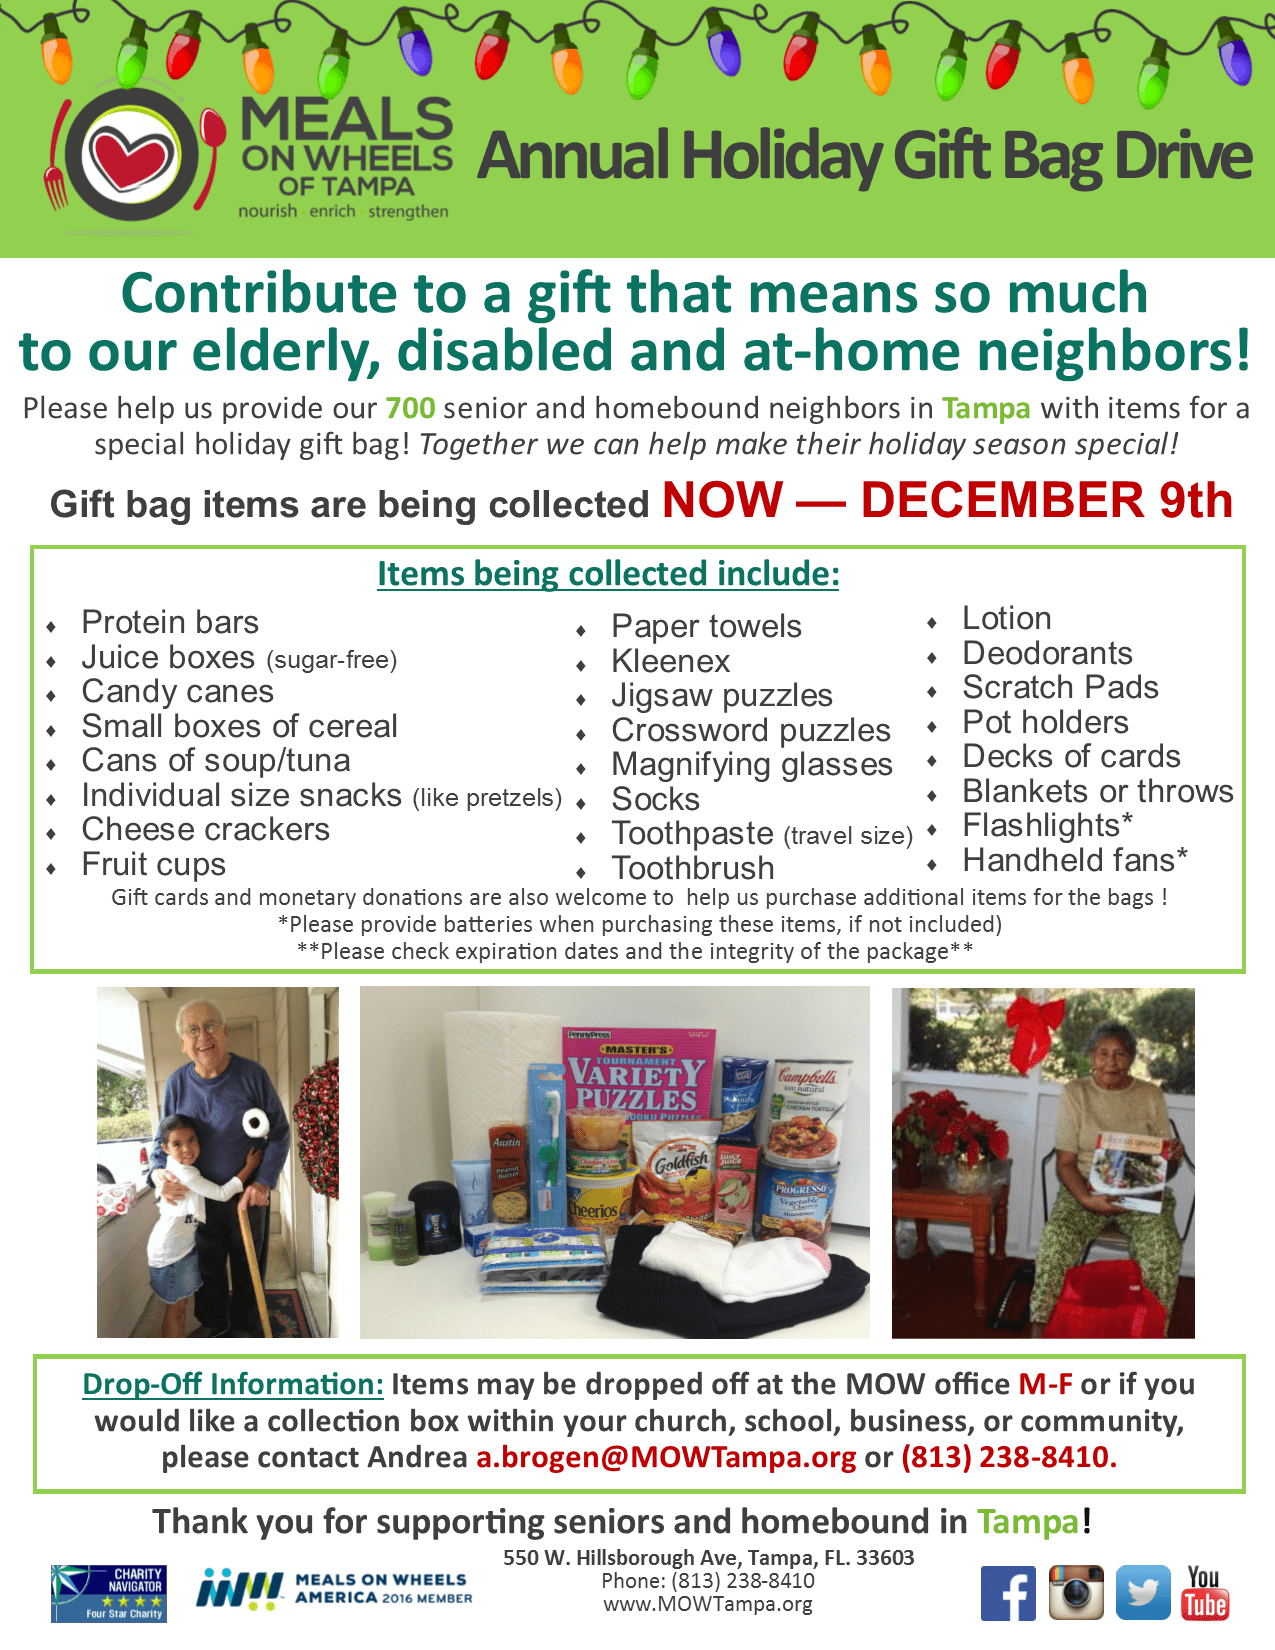 meals on wheels of tampa s annual holiday gift bag drive contribute to meals on wheels of tampa s annual holiday gift bag drive items are being